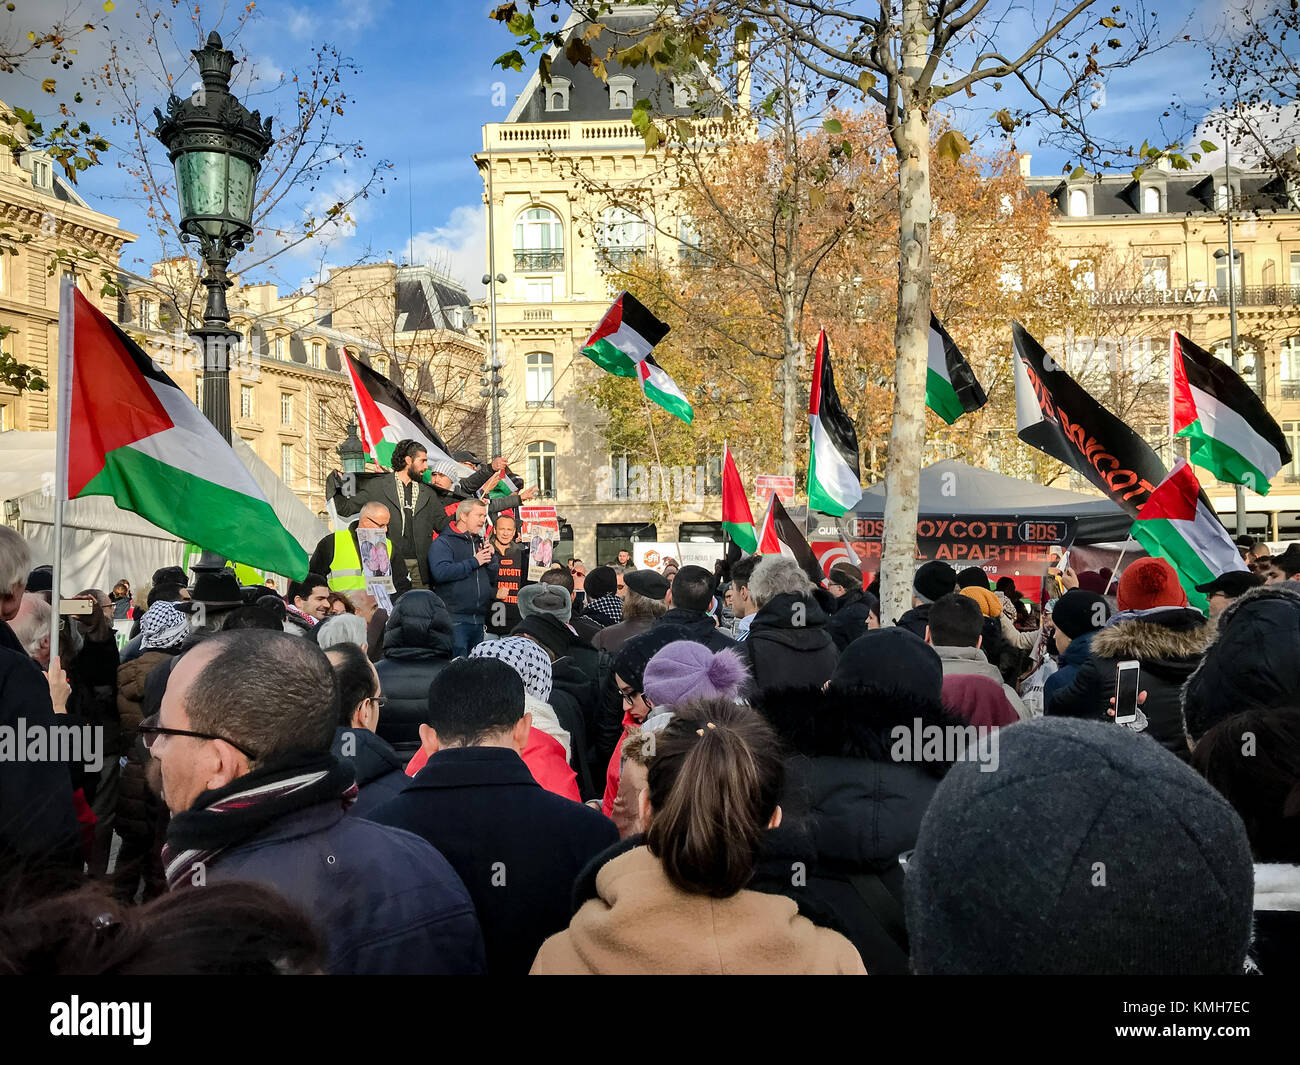 Paris, France. 09th Dec, 2017. 2017, December 9th - Paris, France: People gathered at Place de la République - Stock Image